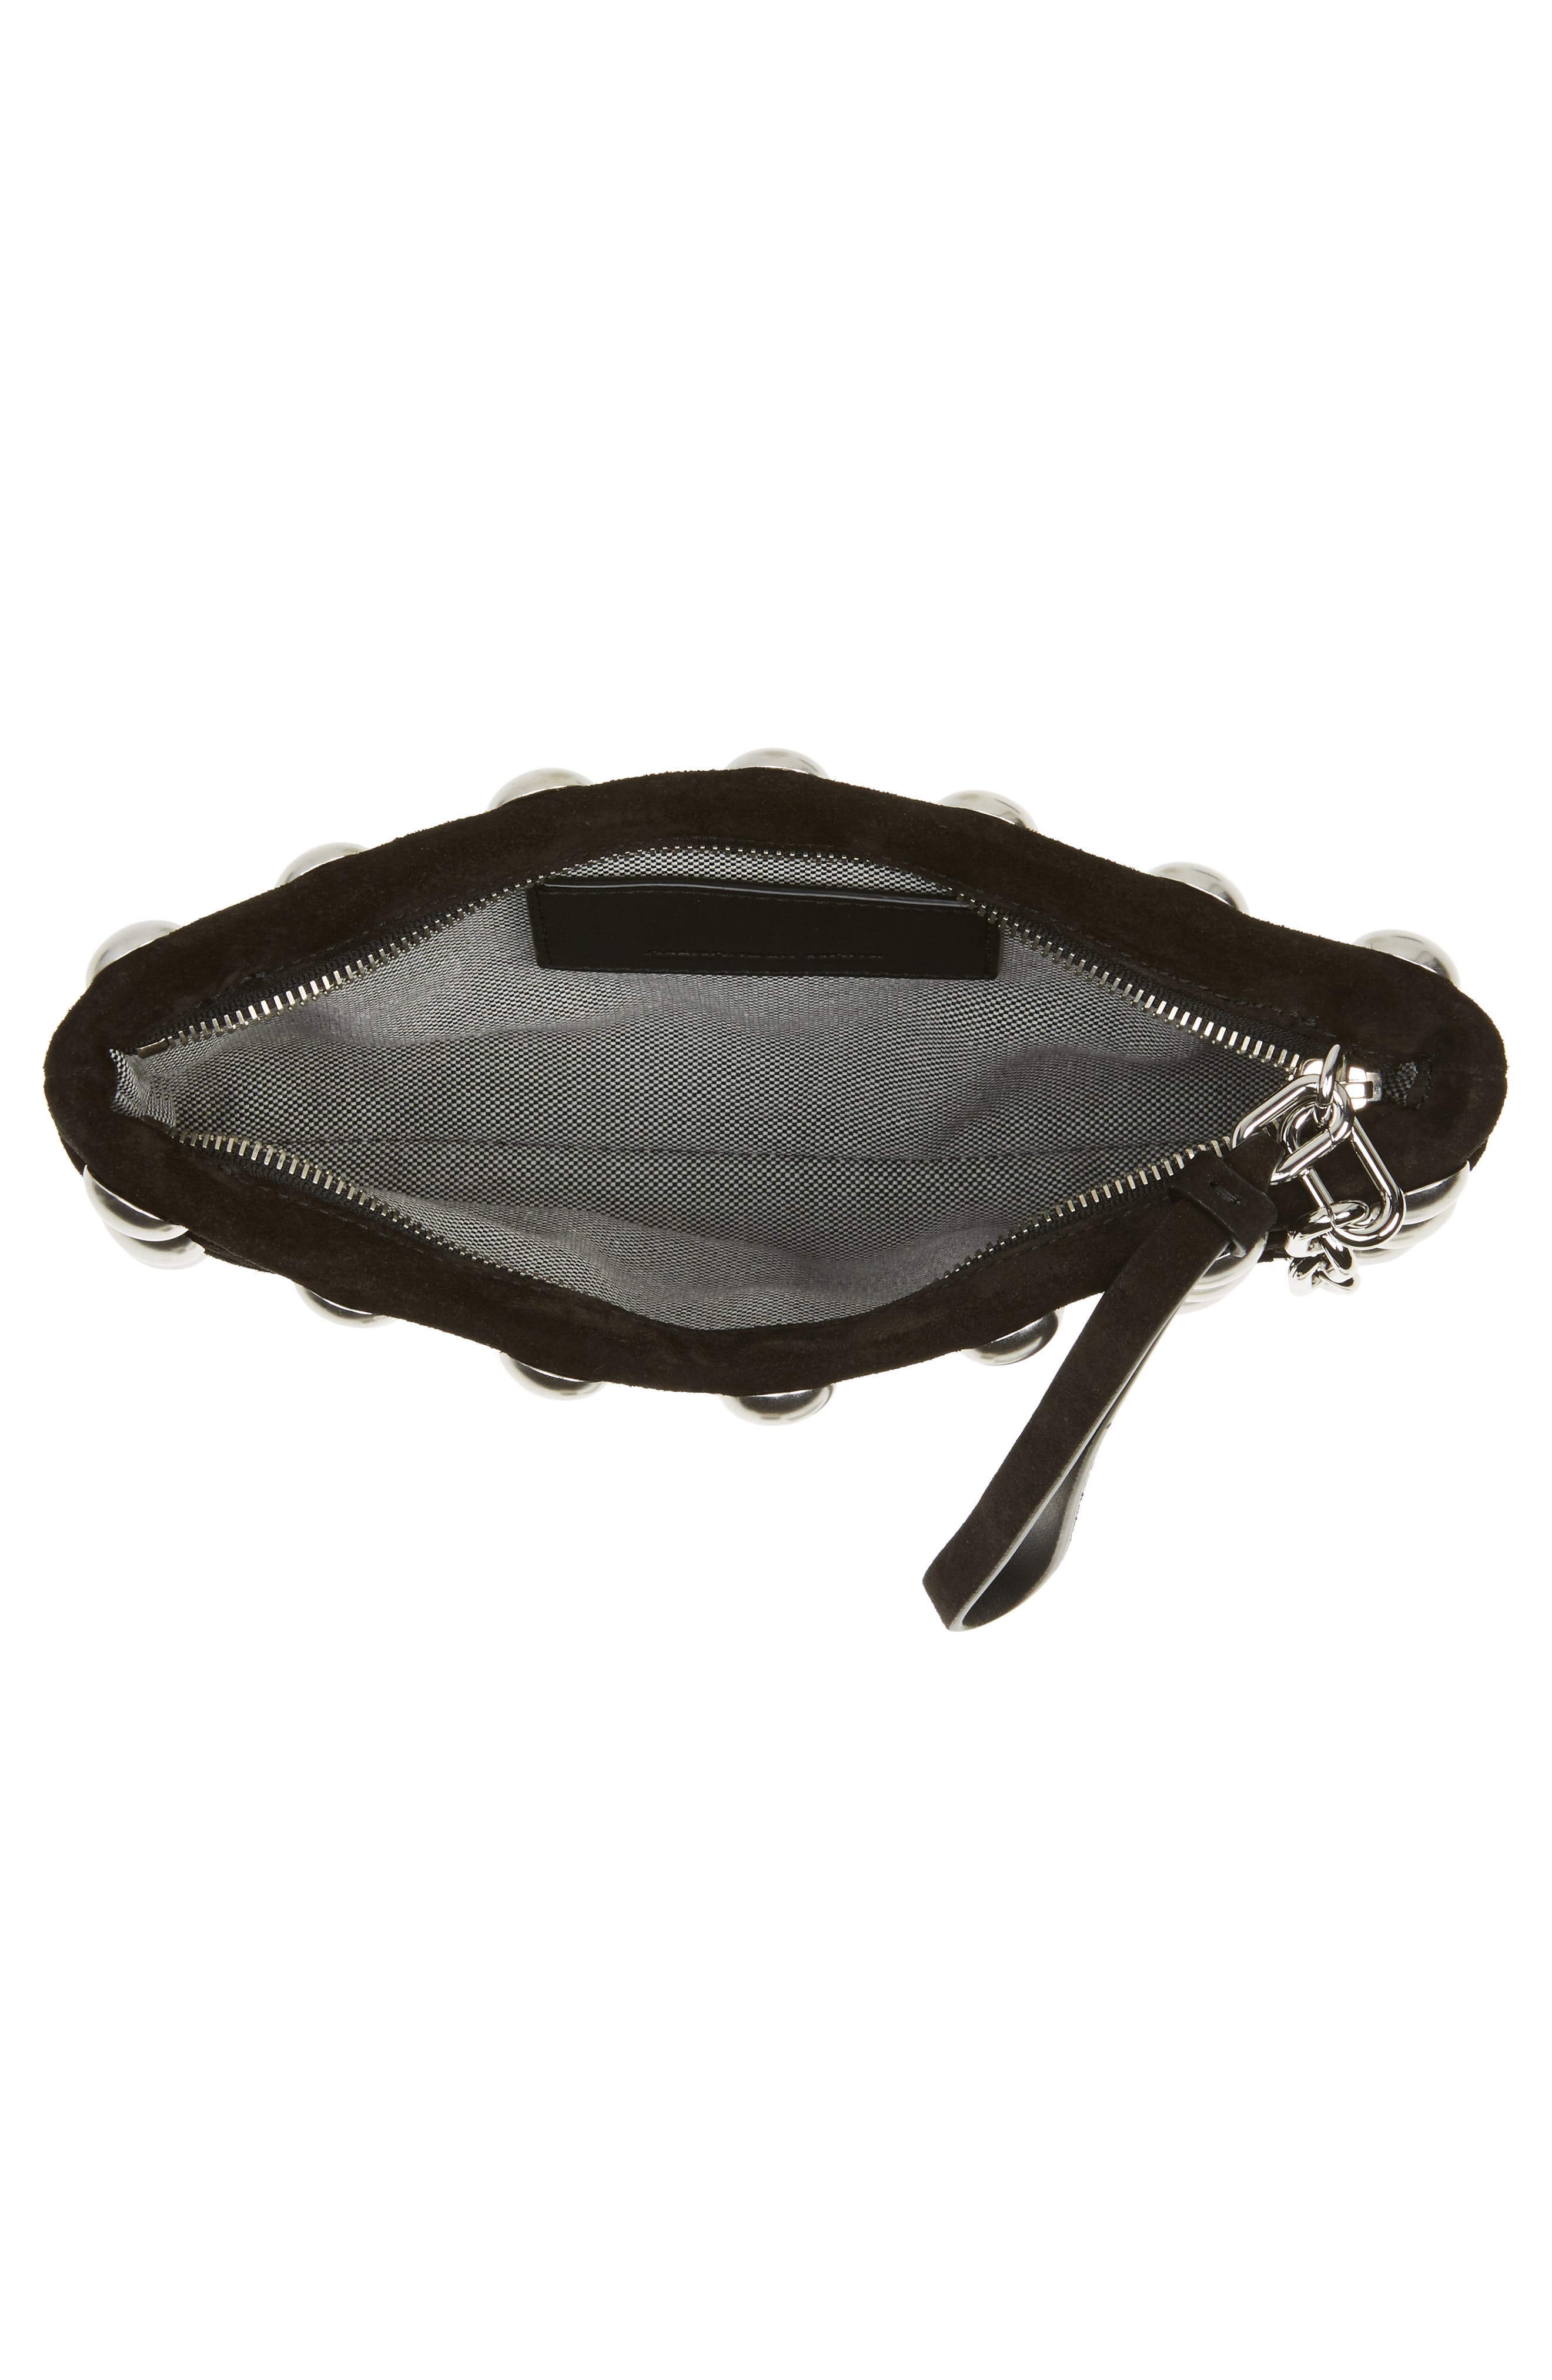 Roxy Studded Cage Leather Wristlet,                             Alternate thumbnail 4, color,